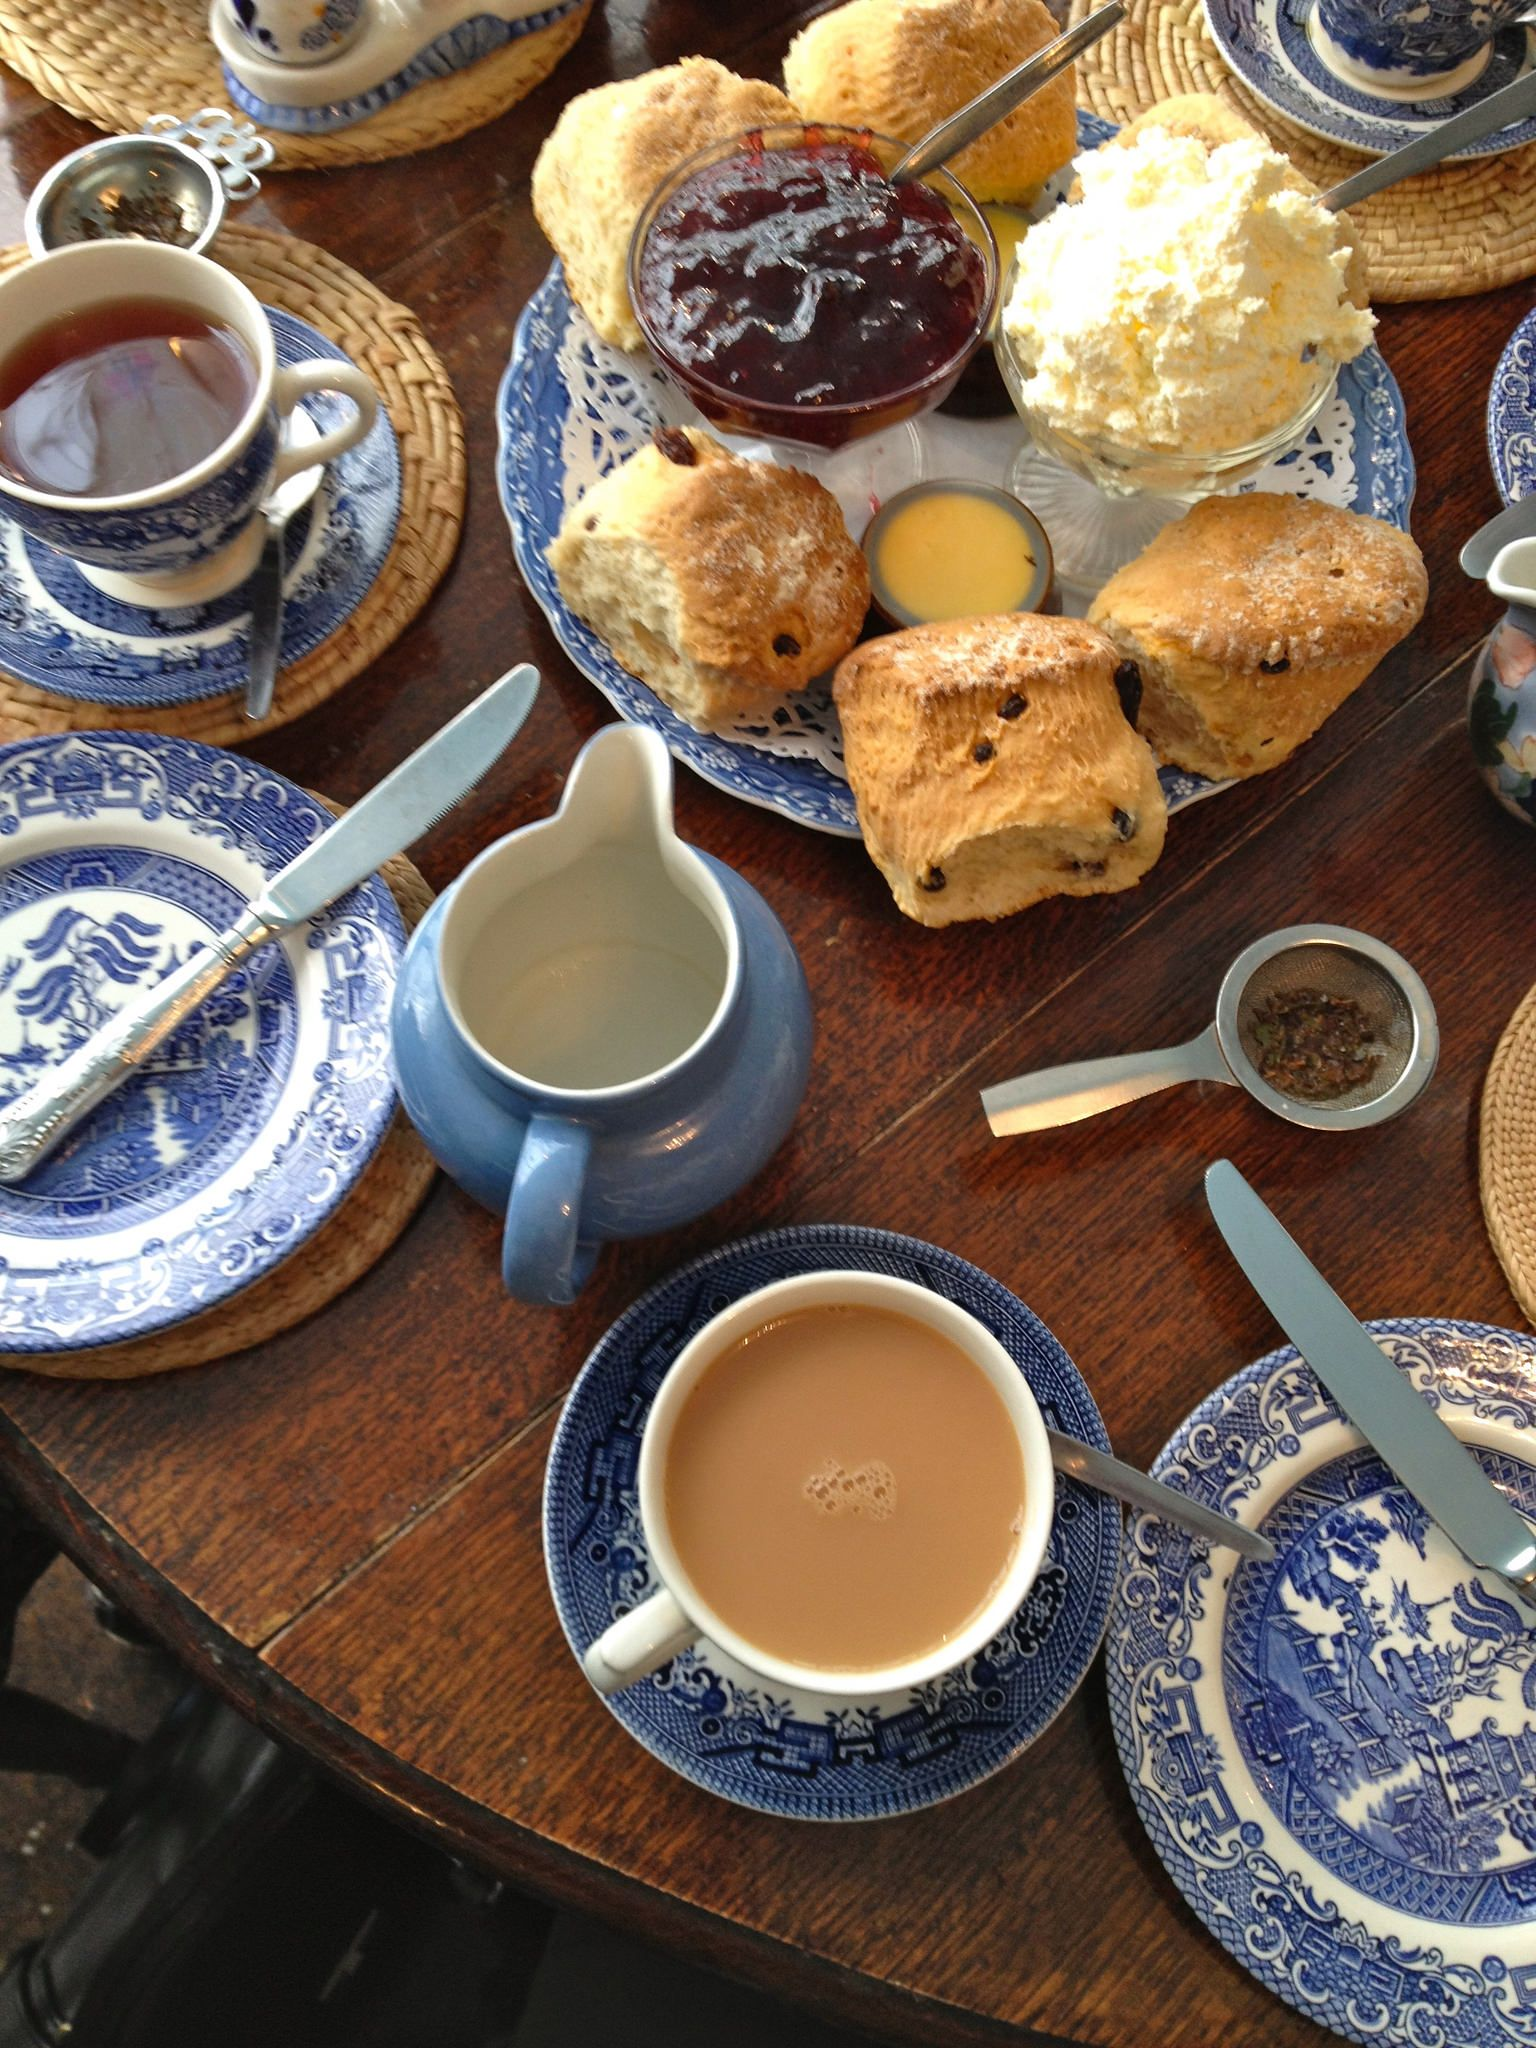 Image result for Scone on willow pattern